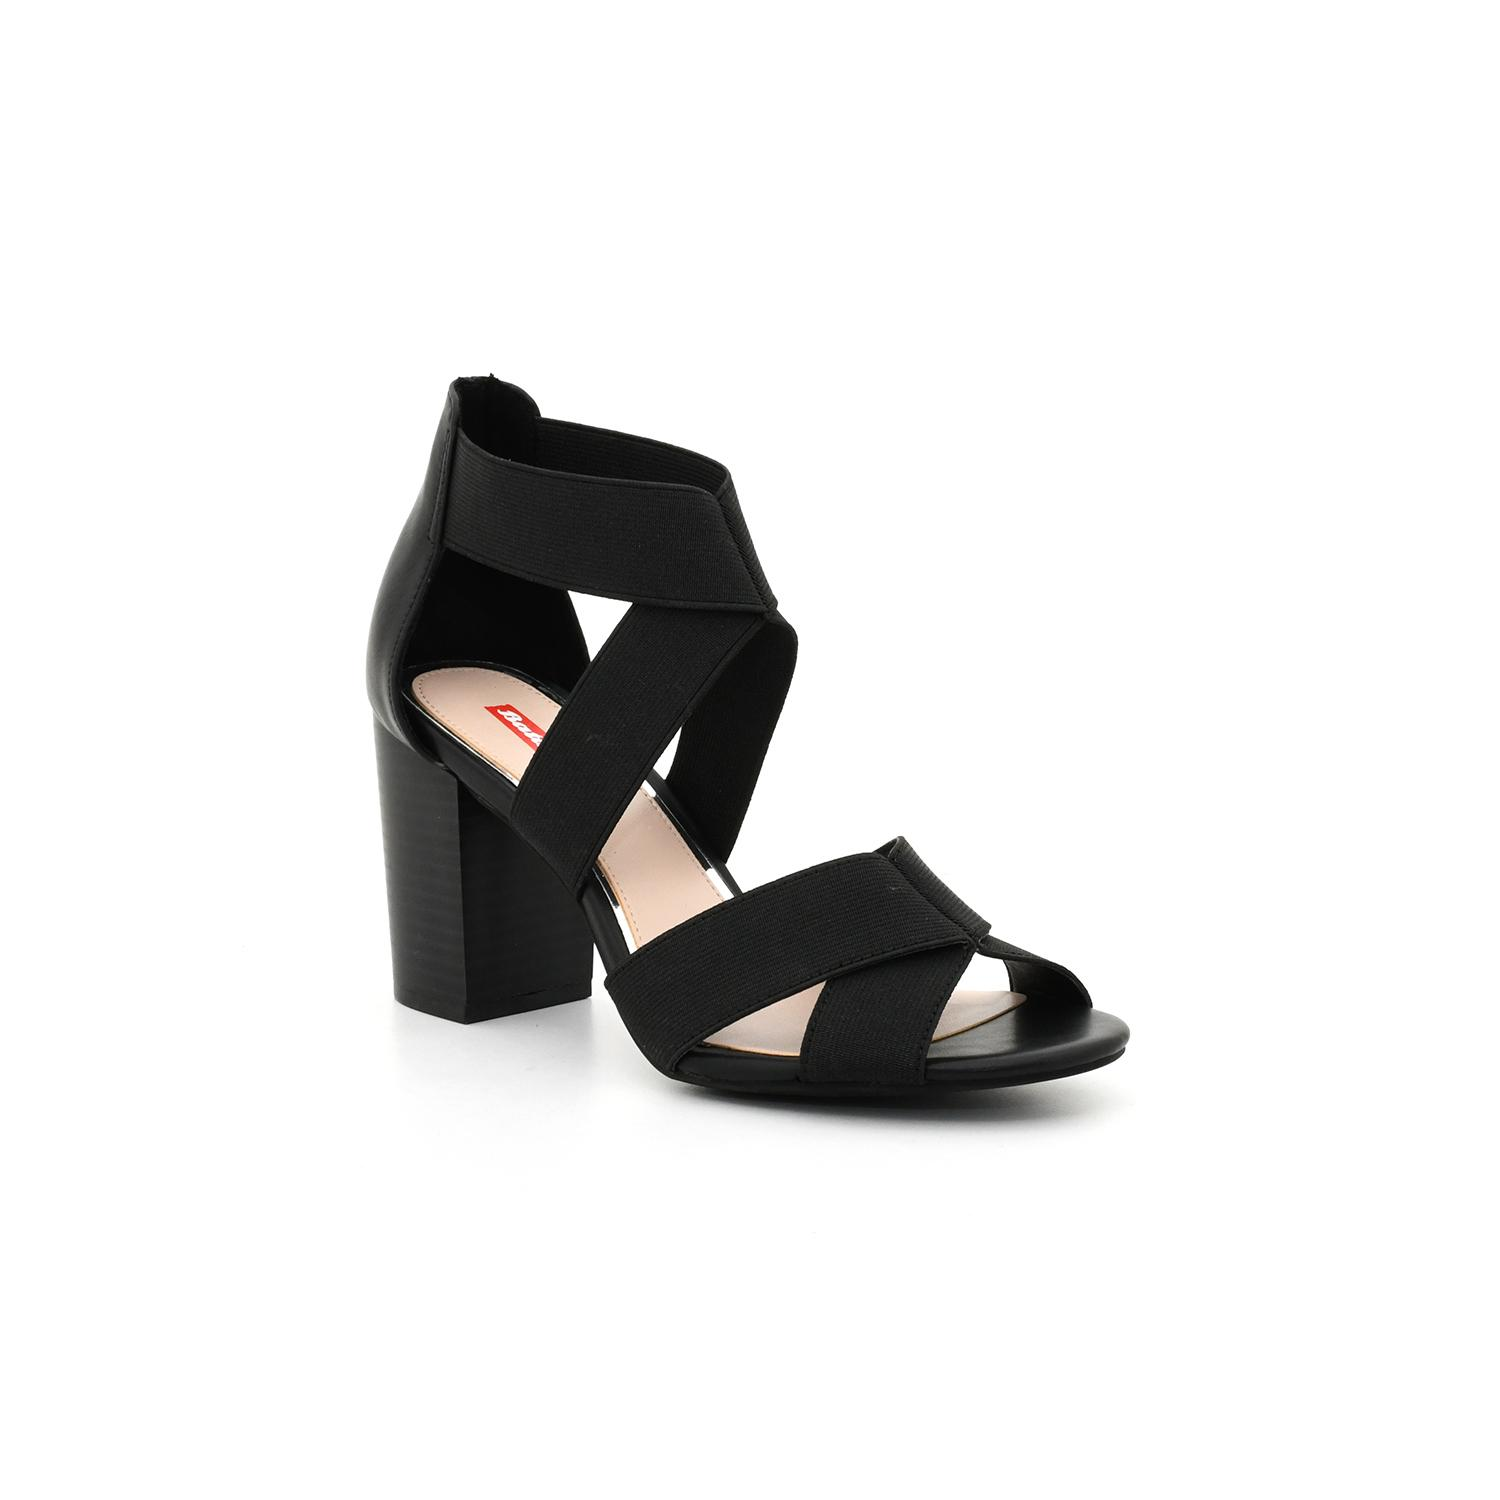 0add32211a19 Buy Bata Womens Shoes at Best Prices Online in Pakistan - daraz.pk